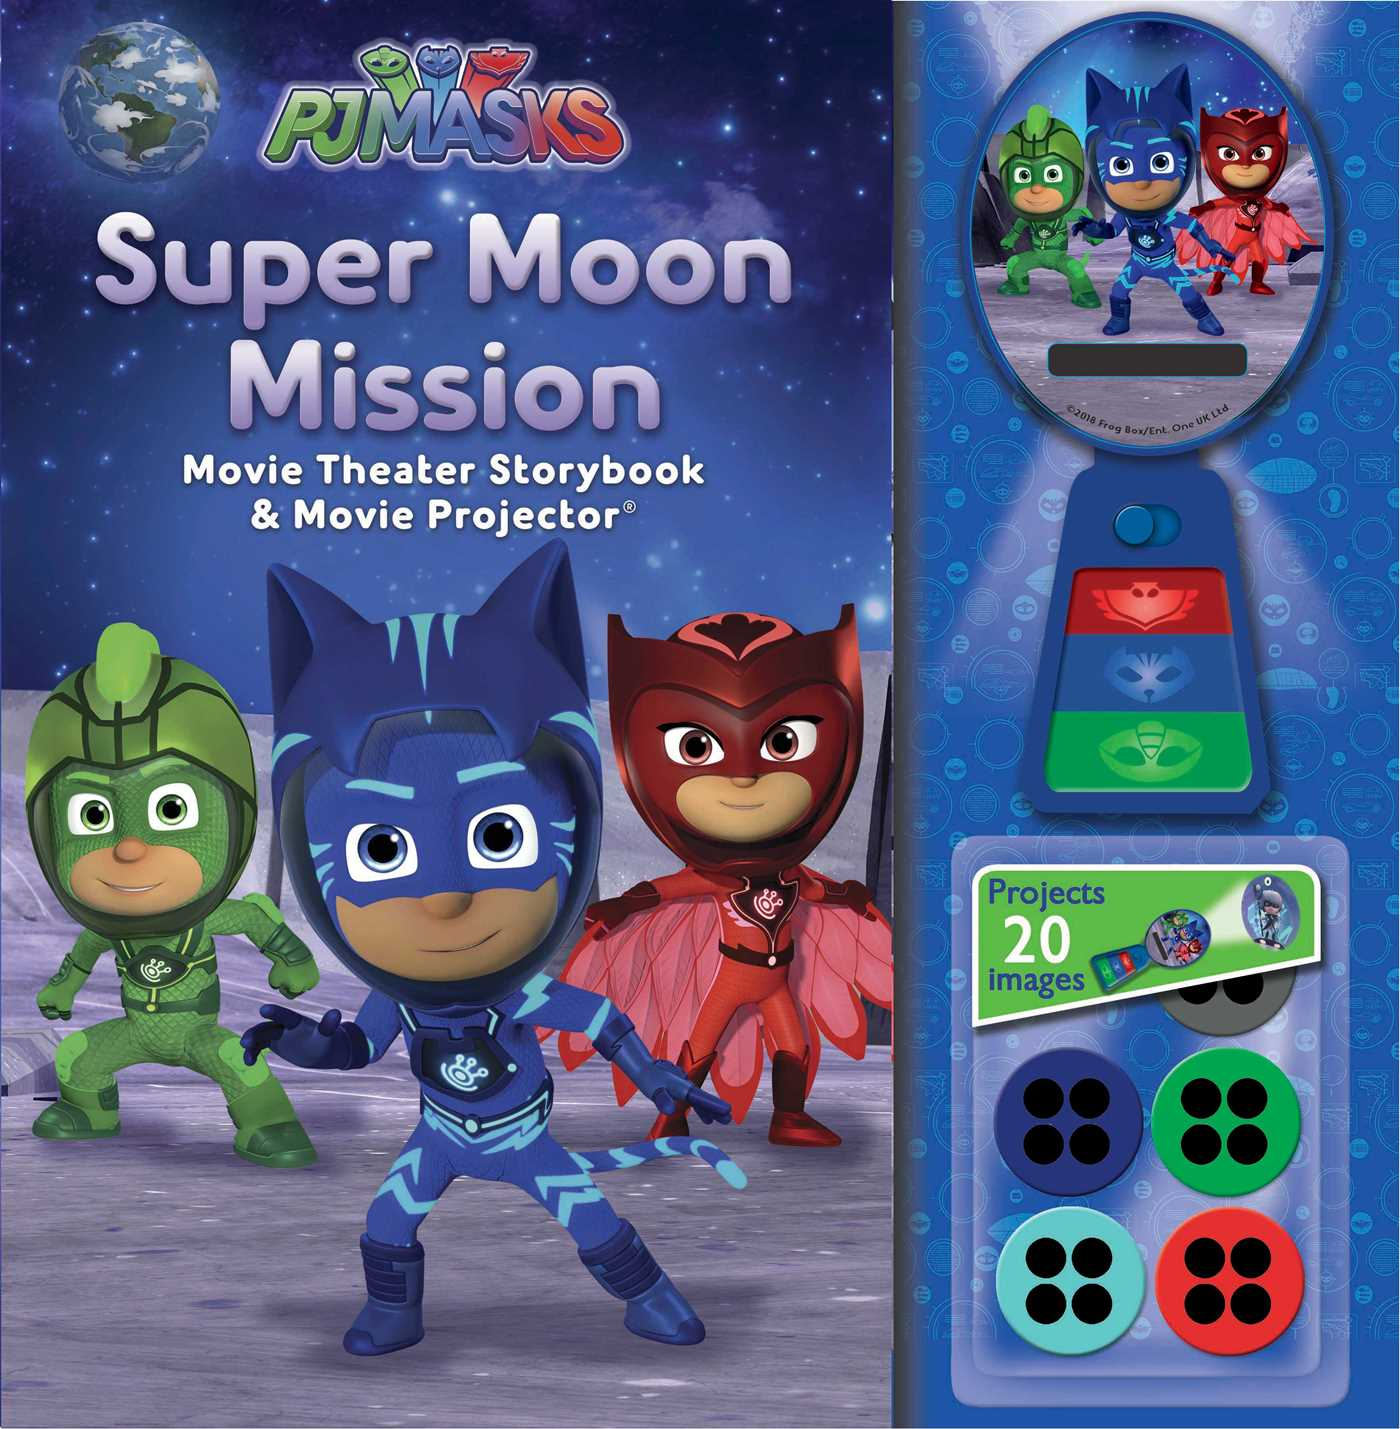 PJ Masks Super Moon Mission Movie Theater Storybook & Projector Book